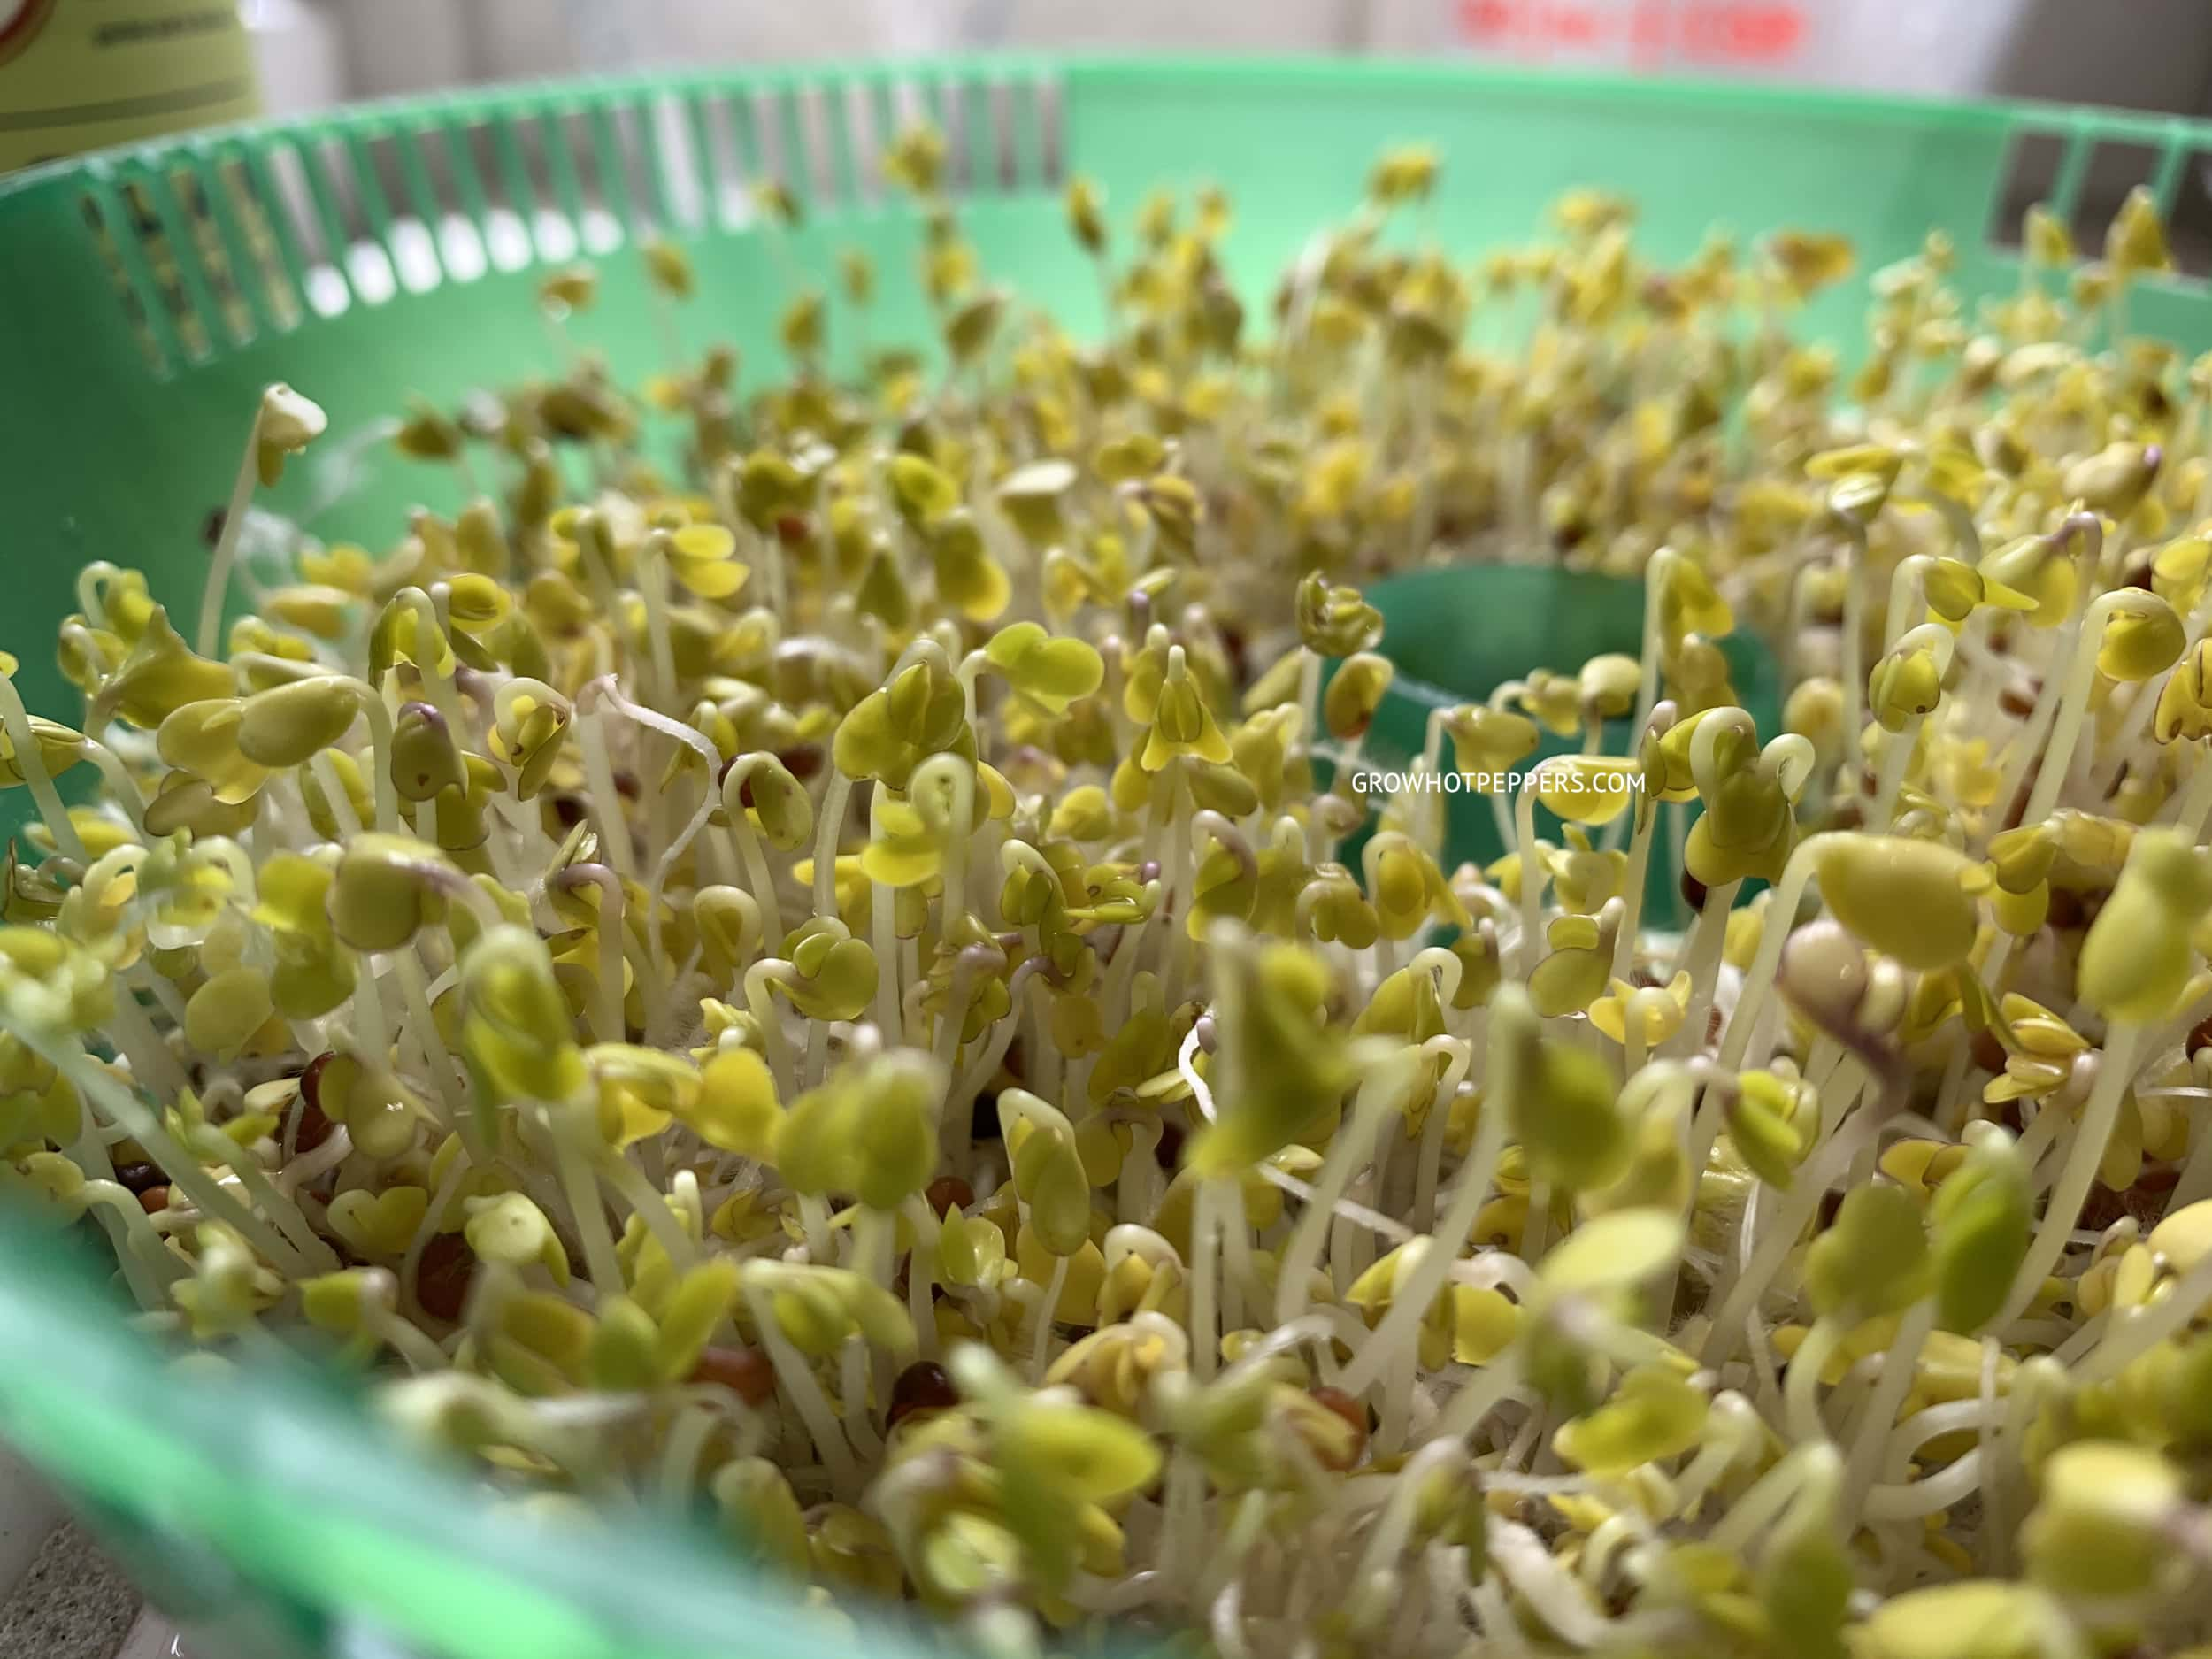 broccoli sprouts growing in tray